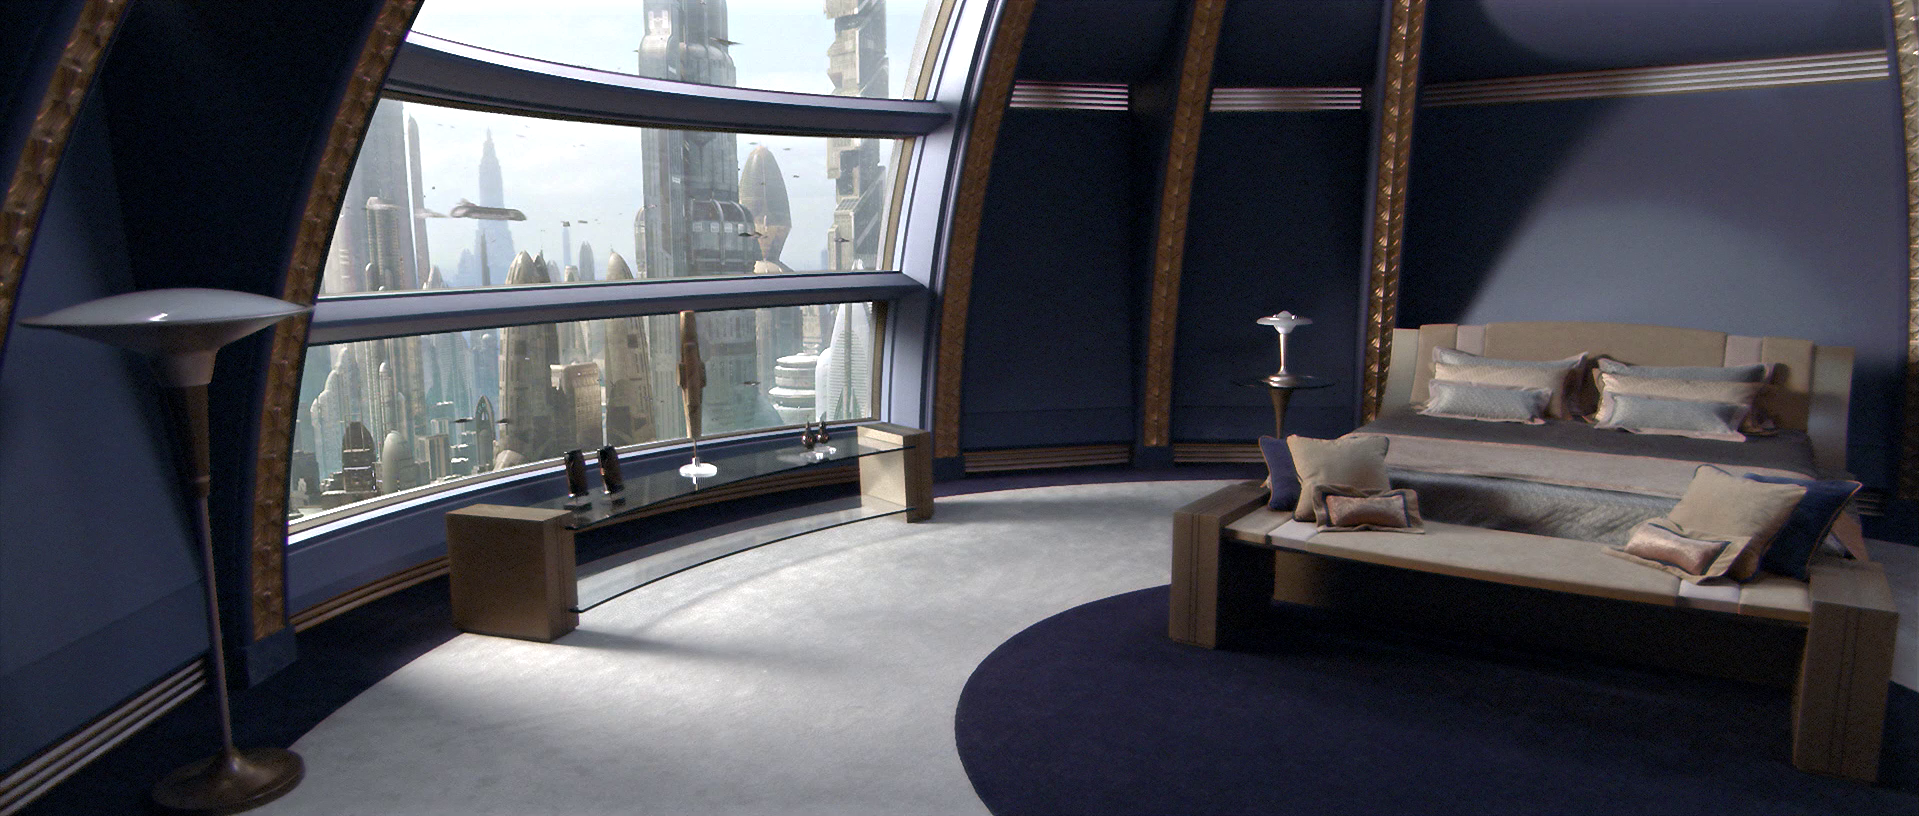 Star Wars Playfully Grownup Home